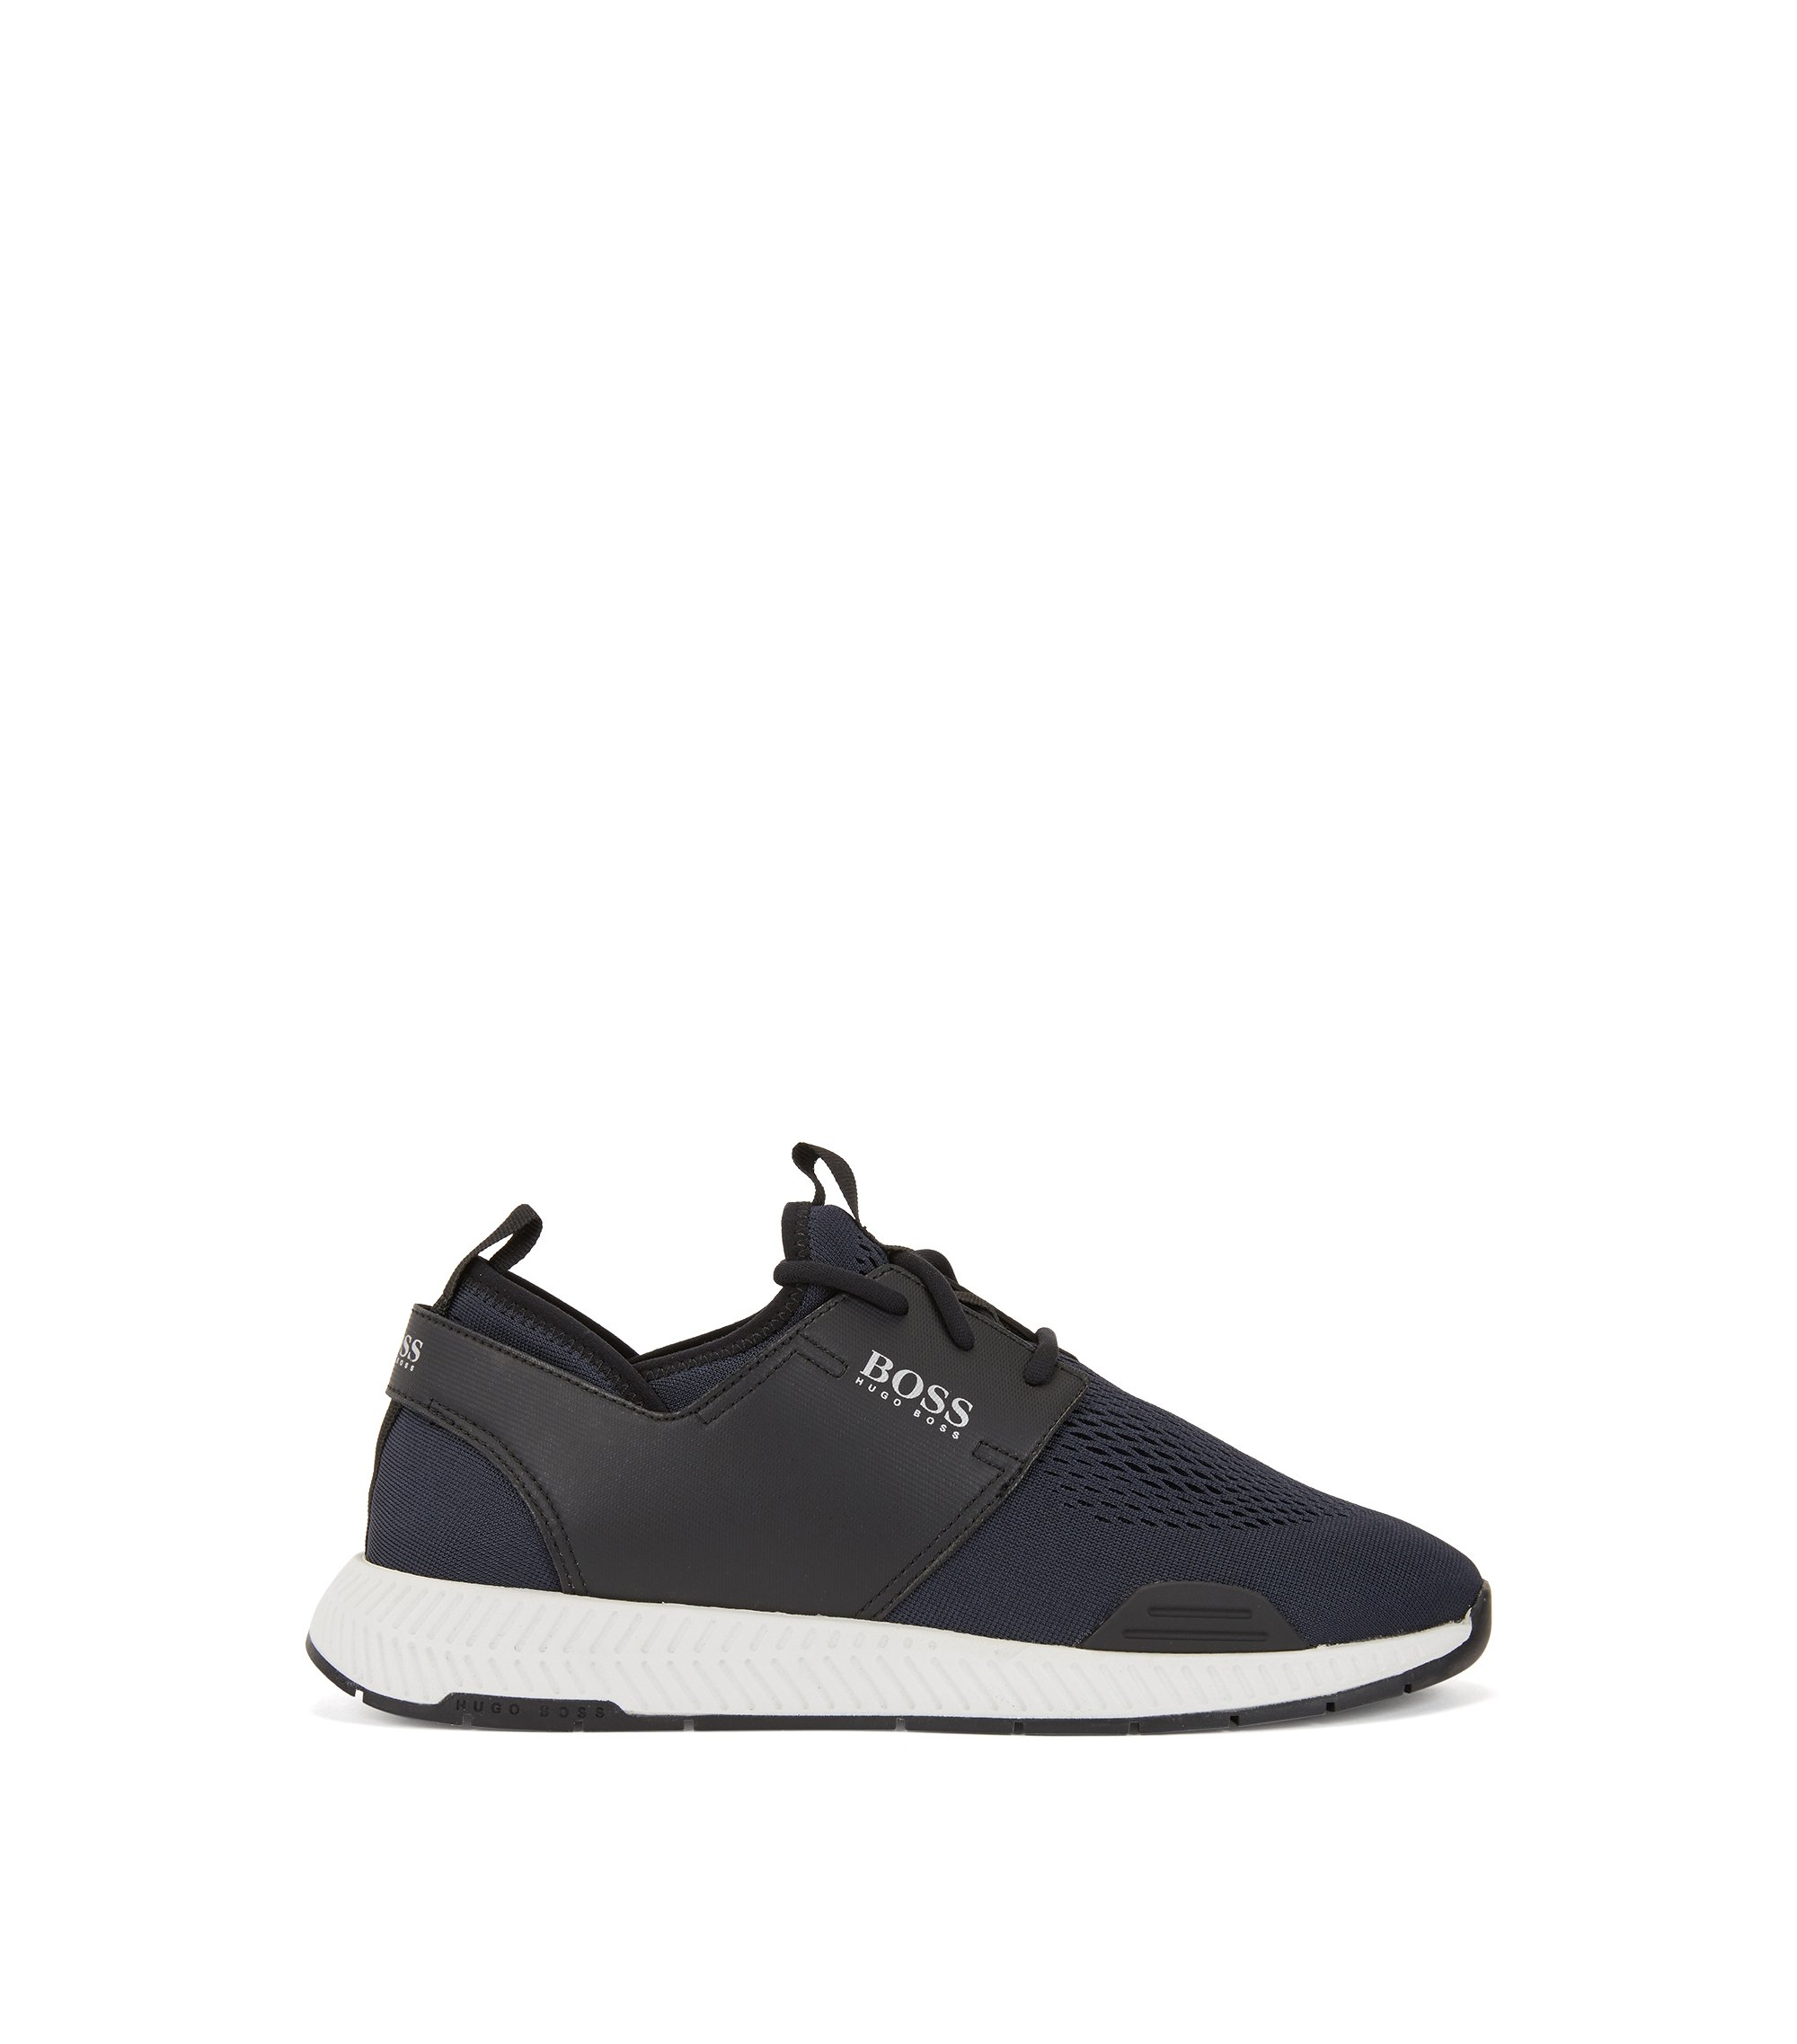 Running-inspired trainers with mesh uppers, Dark Blue